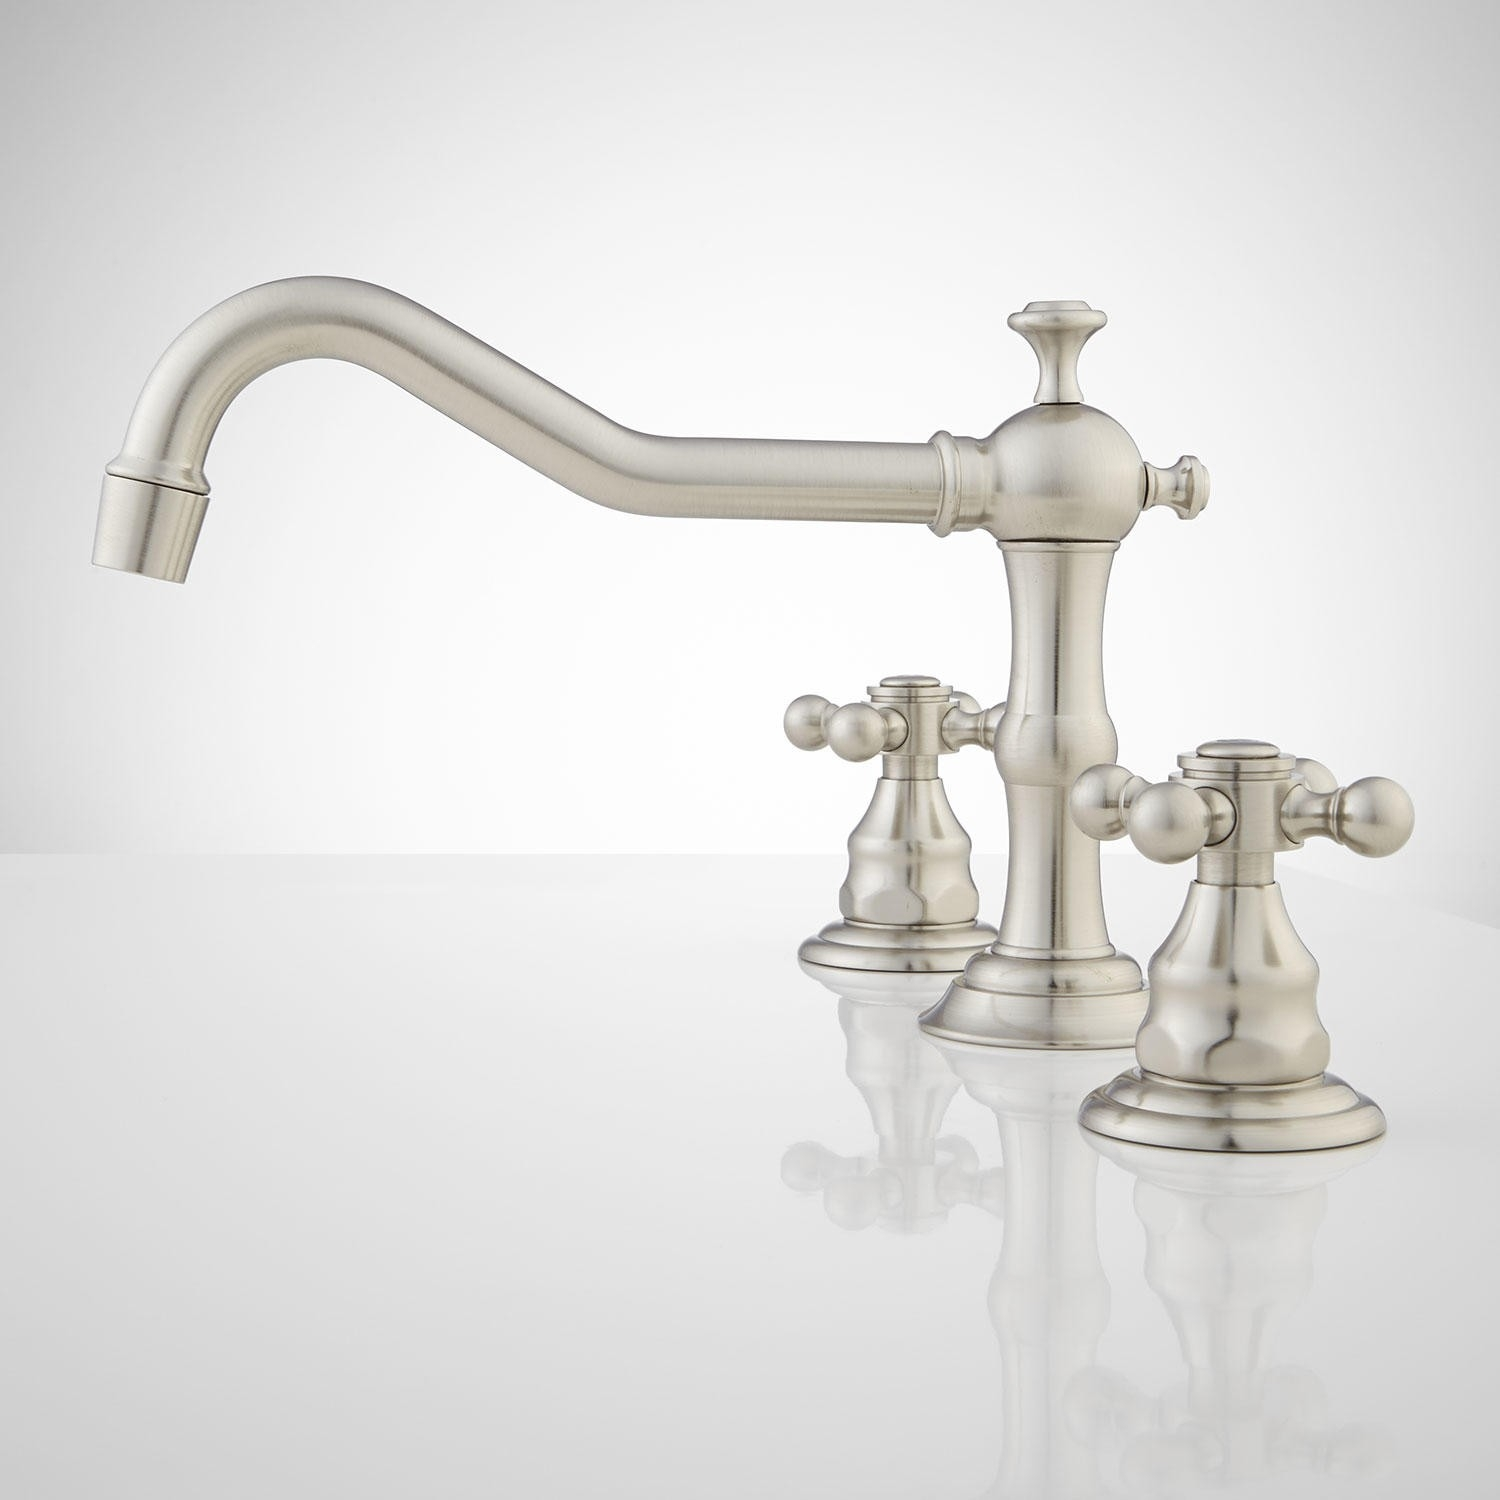 Ideas, bathroom interesting brushed nickel bathroom faucets for your with regard to sizing 1500 x 1500  .